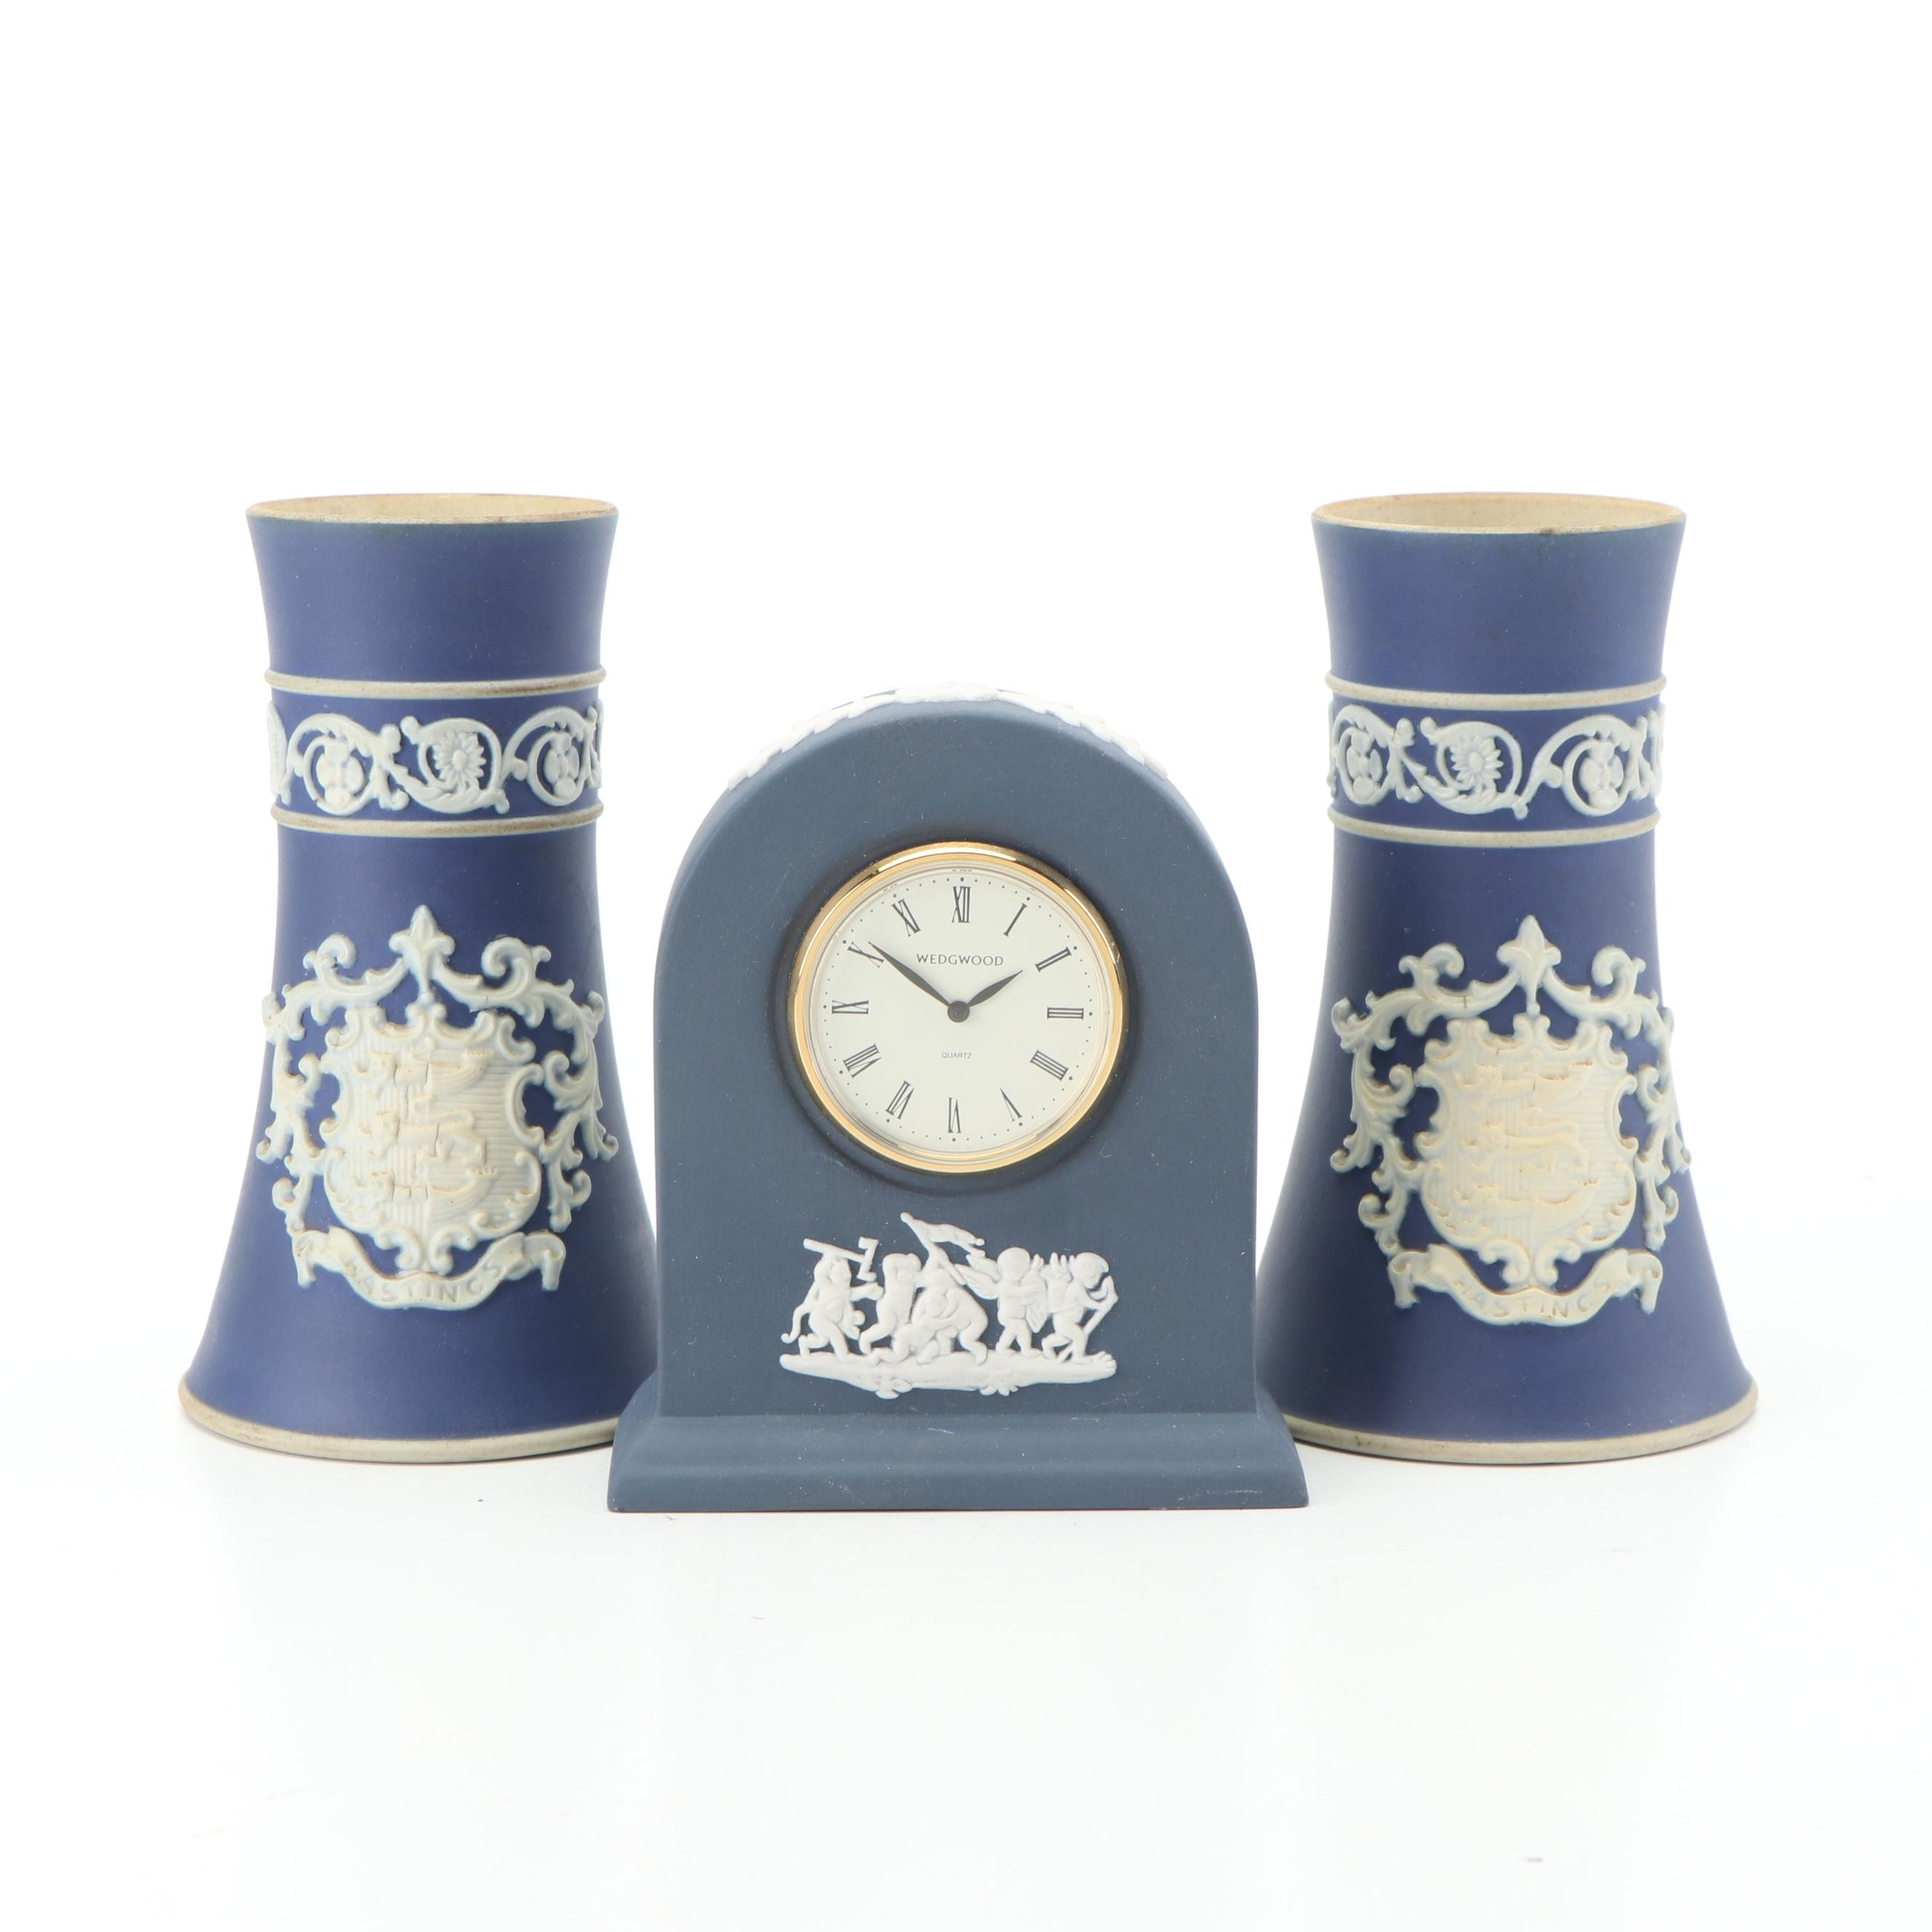 Wedgwood Adams Jasperware Bud Vases and Clock